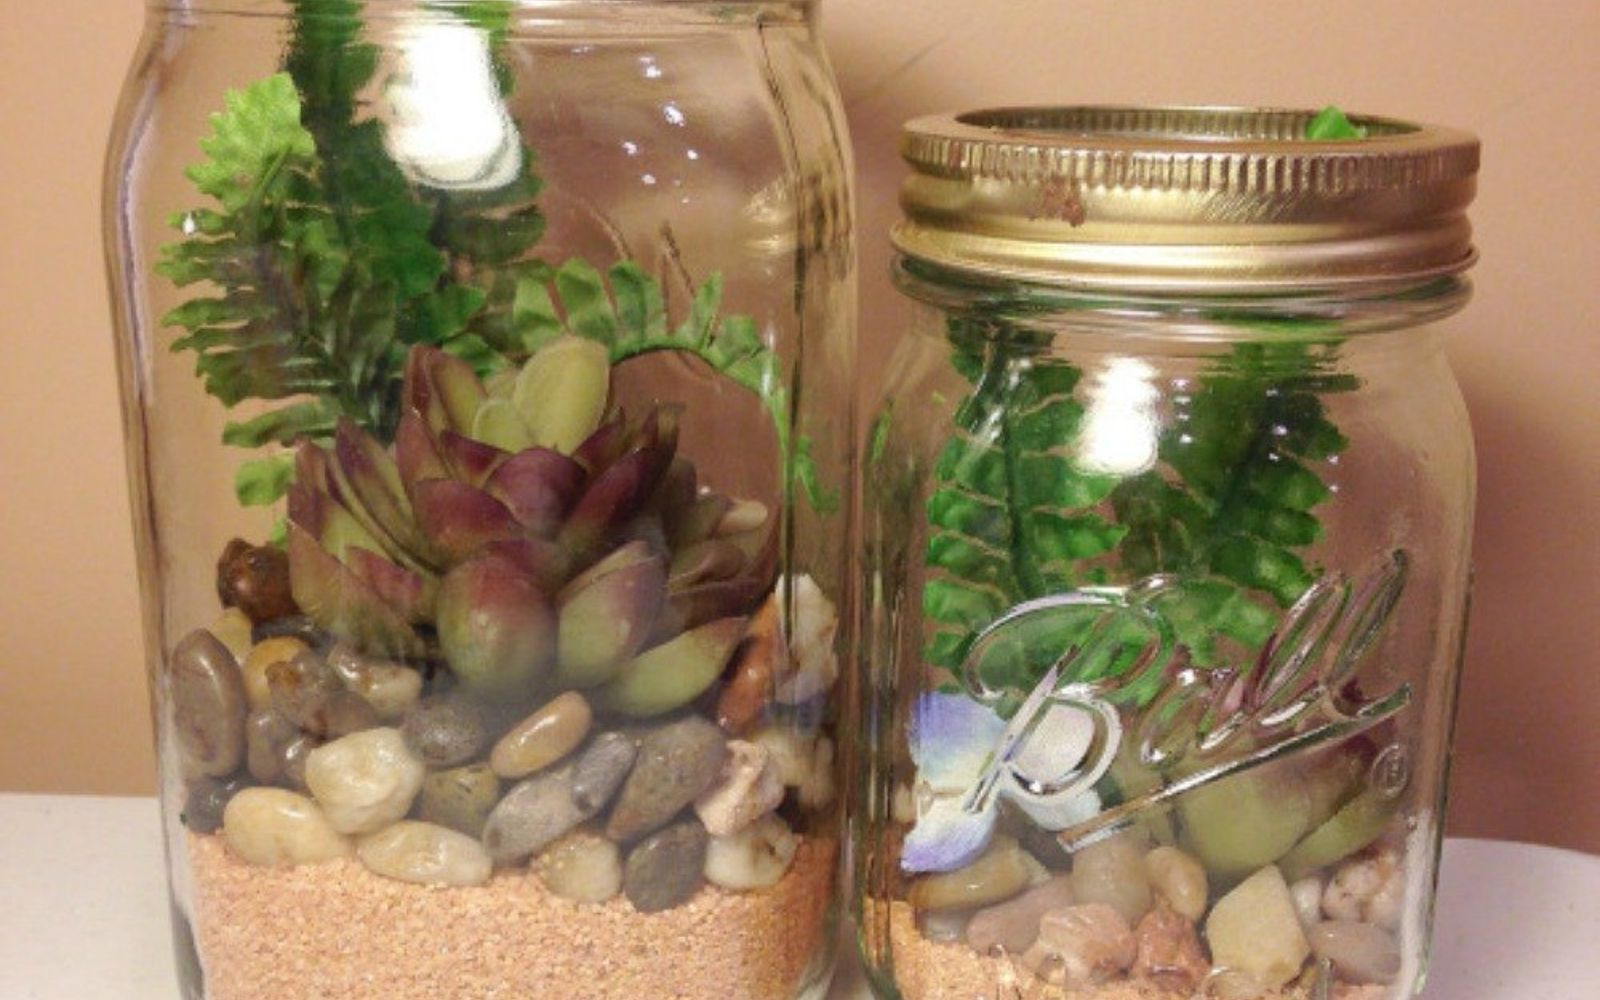 s 14 exciting mason jar ideas you just have to try, mason jars, 6 The adorable winter terrarium